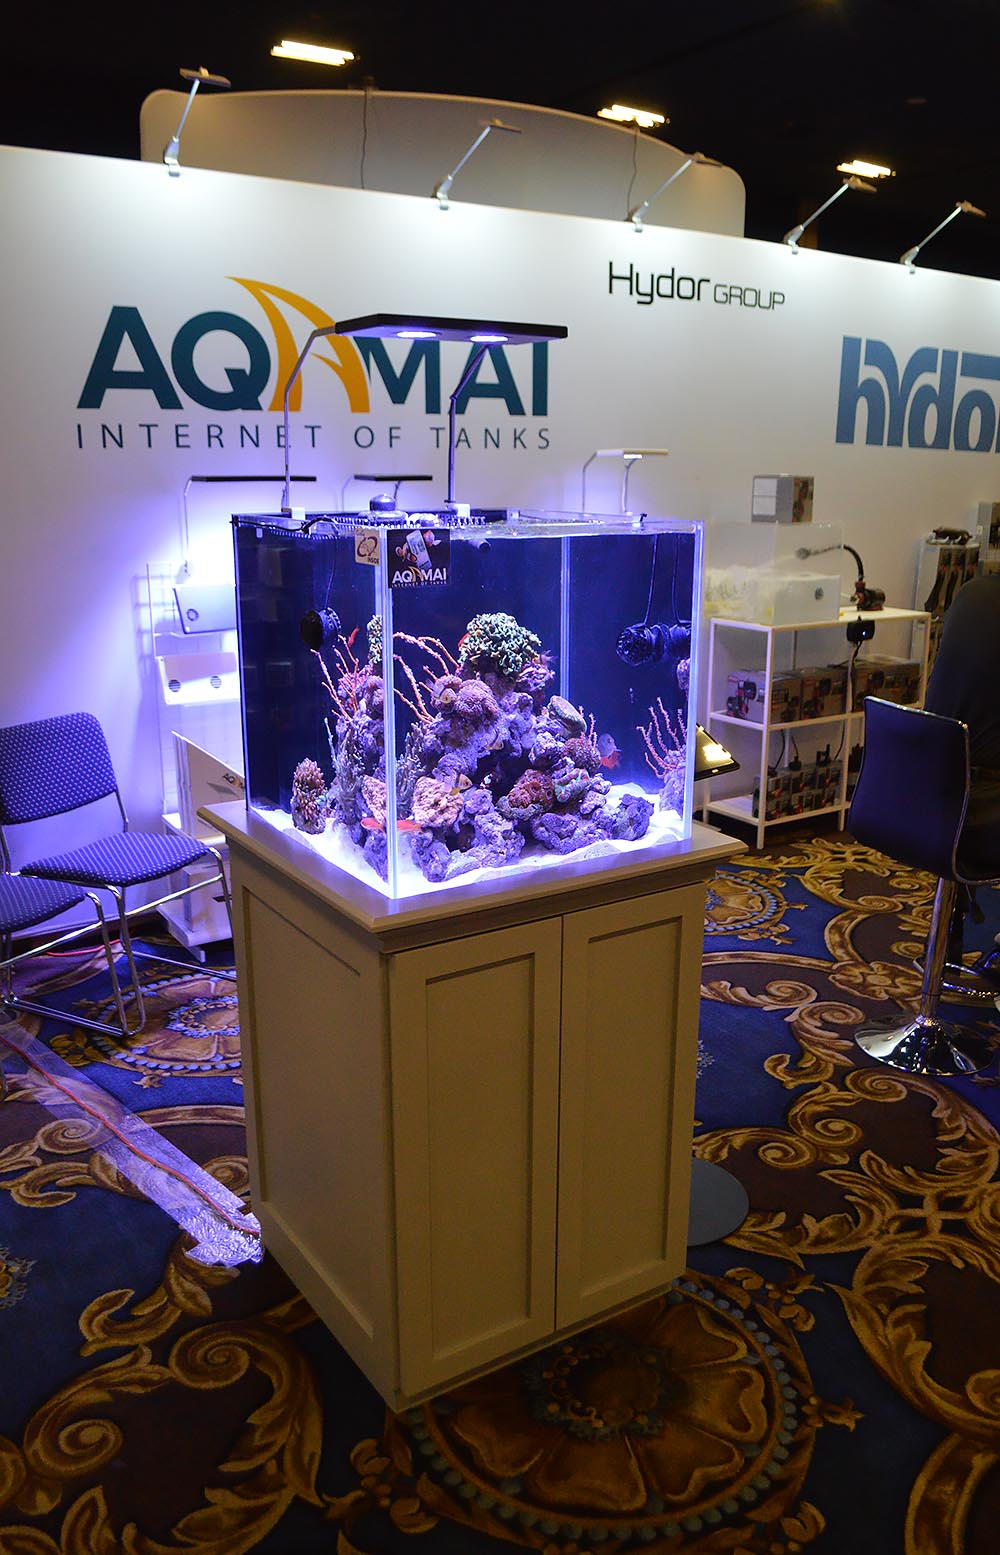 Hydor Group's booth included this nice rimless tank setup.